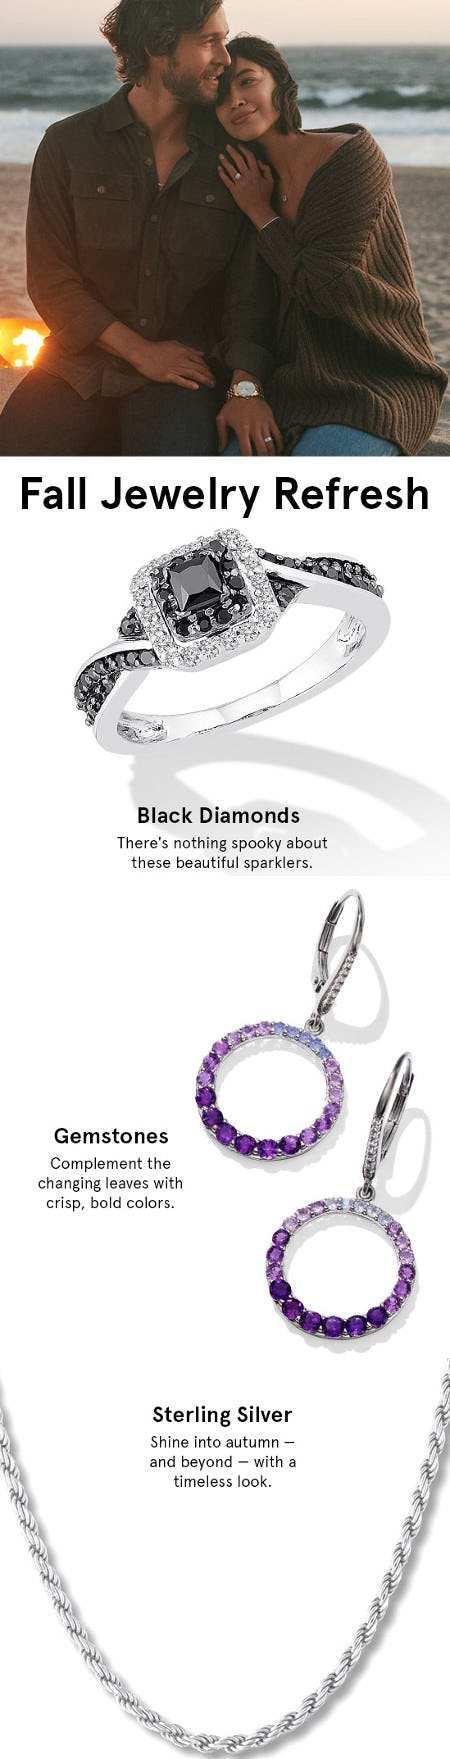 Fresh Fall Styles They'll Love from Kay Jewelers